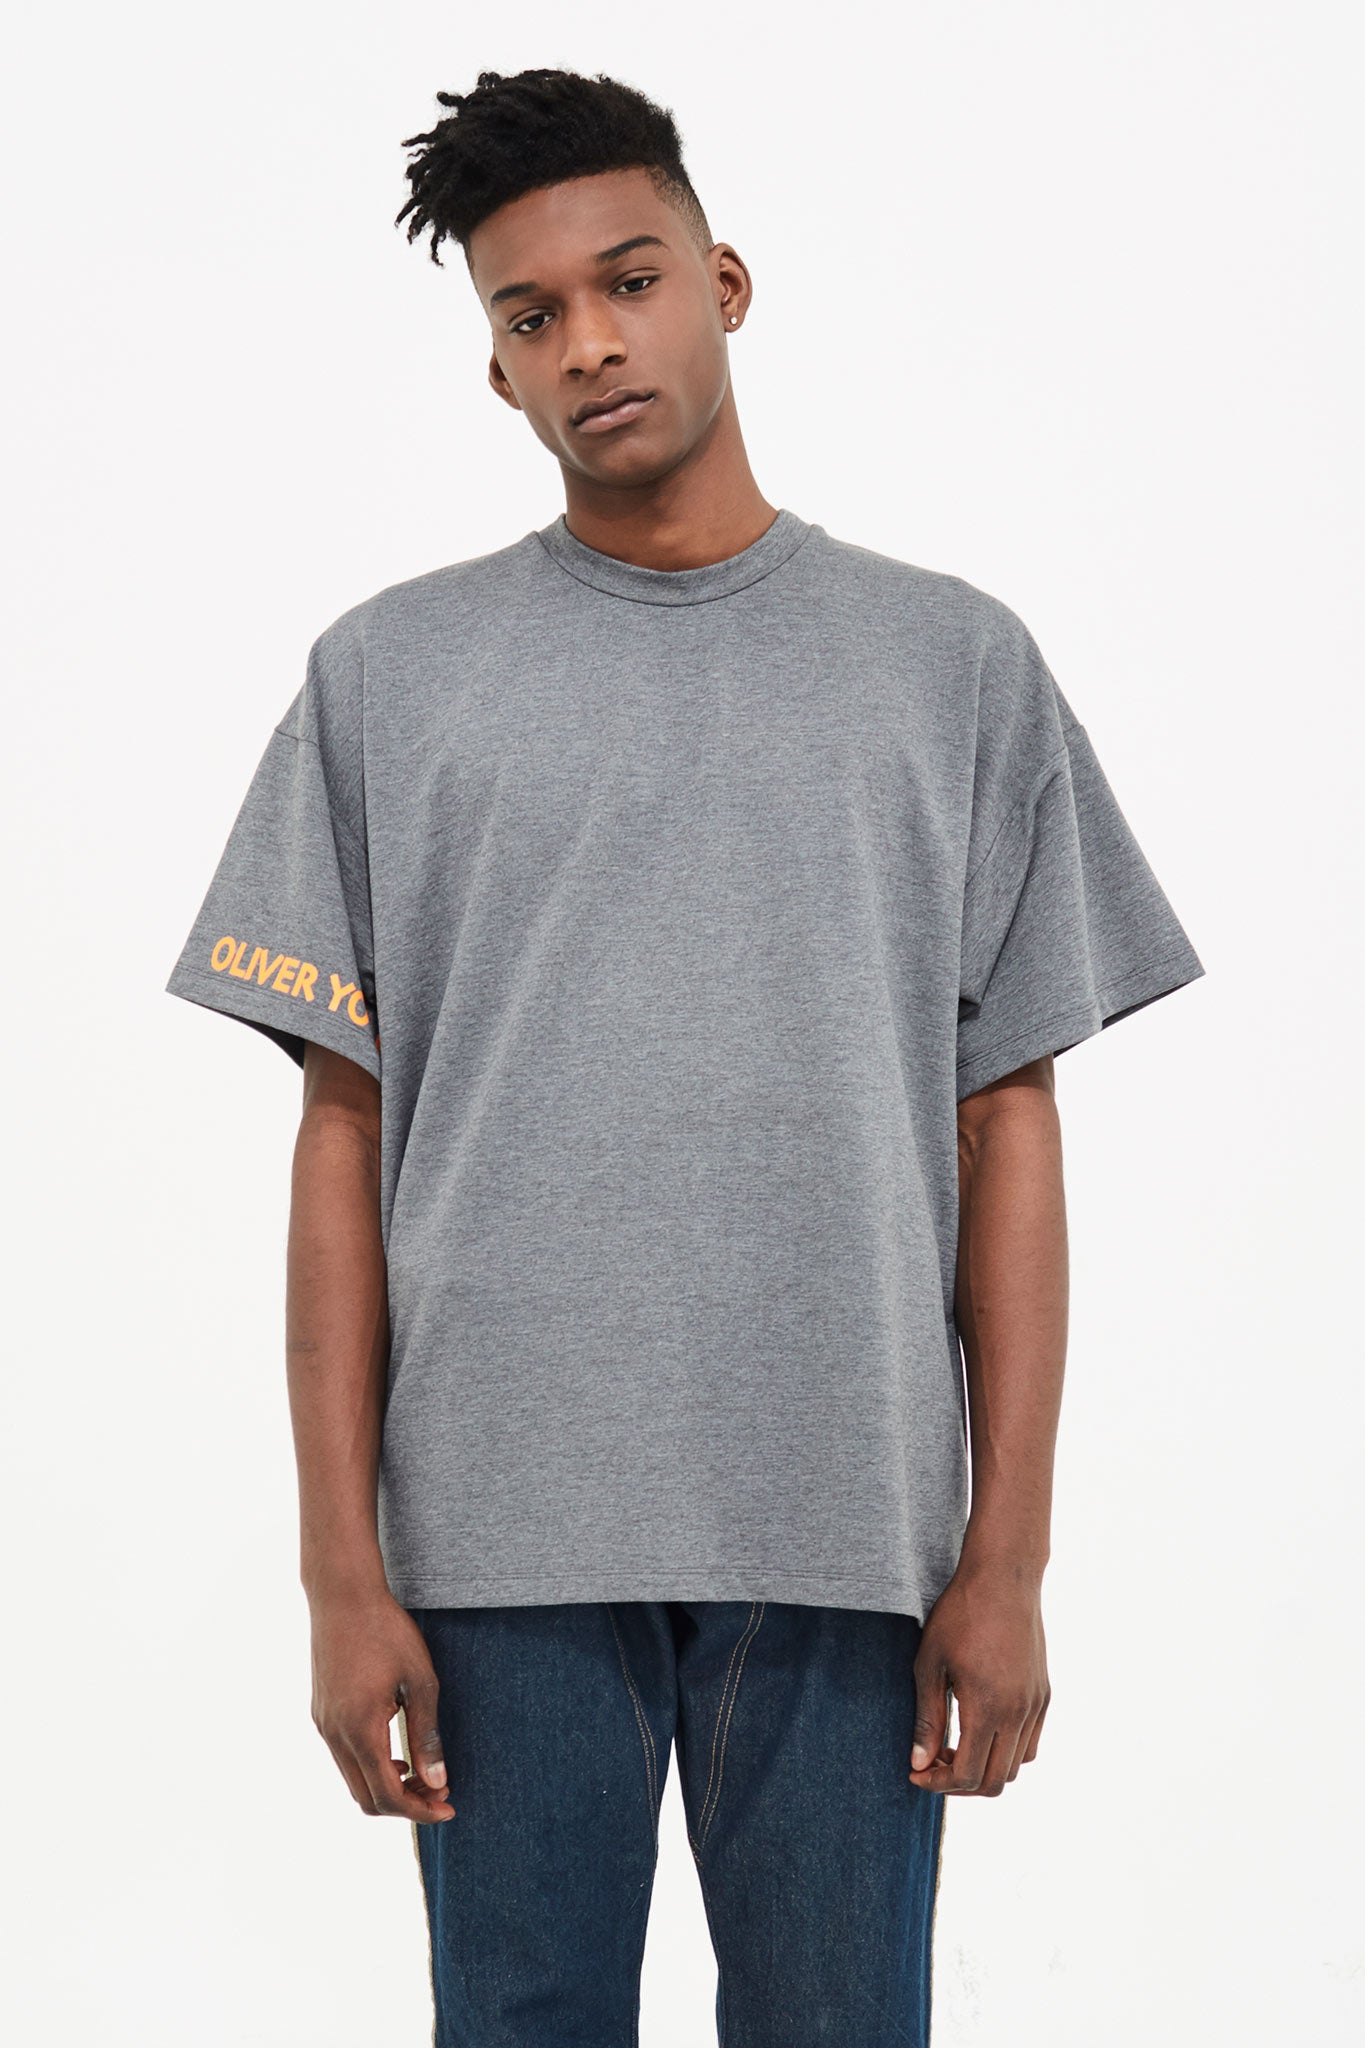 GREY BASIC TEE WITH OLIVER YOUNG PRINT